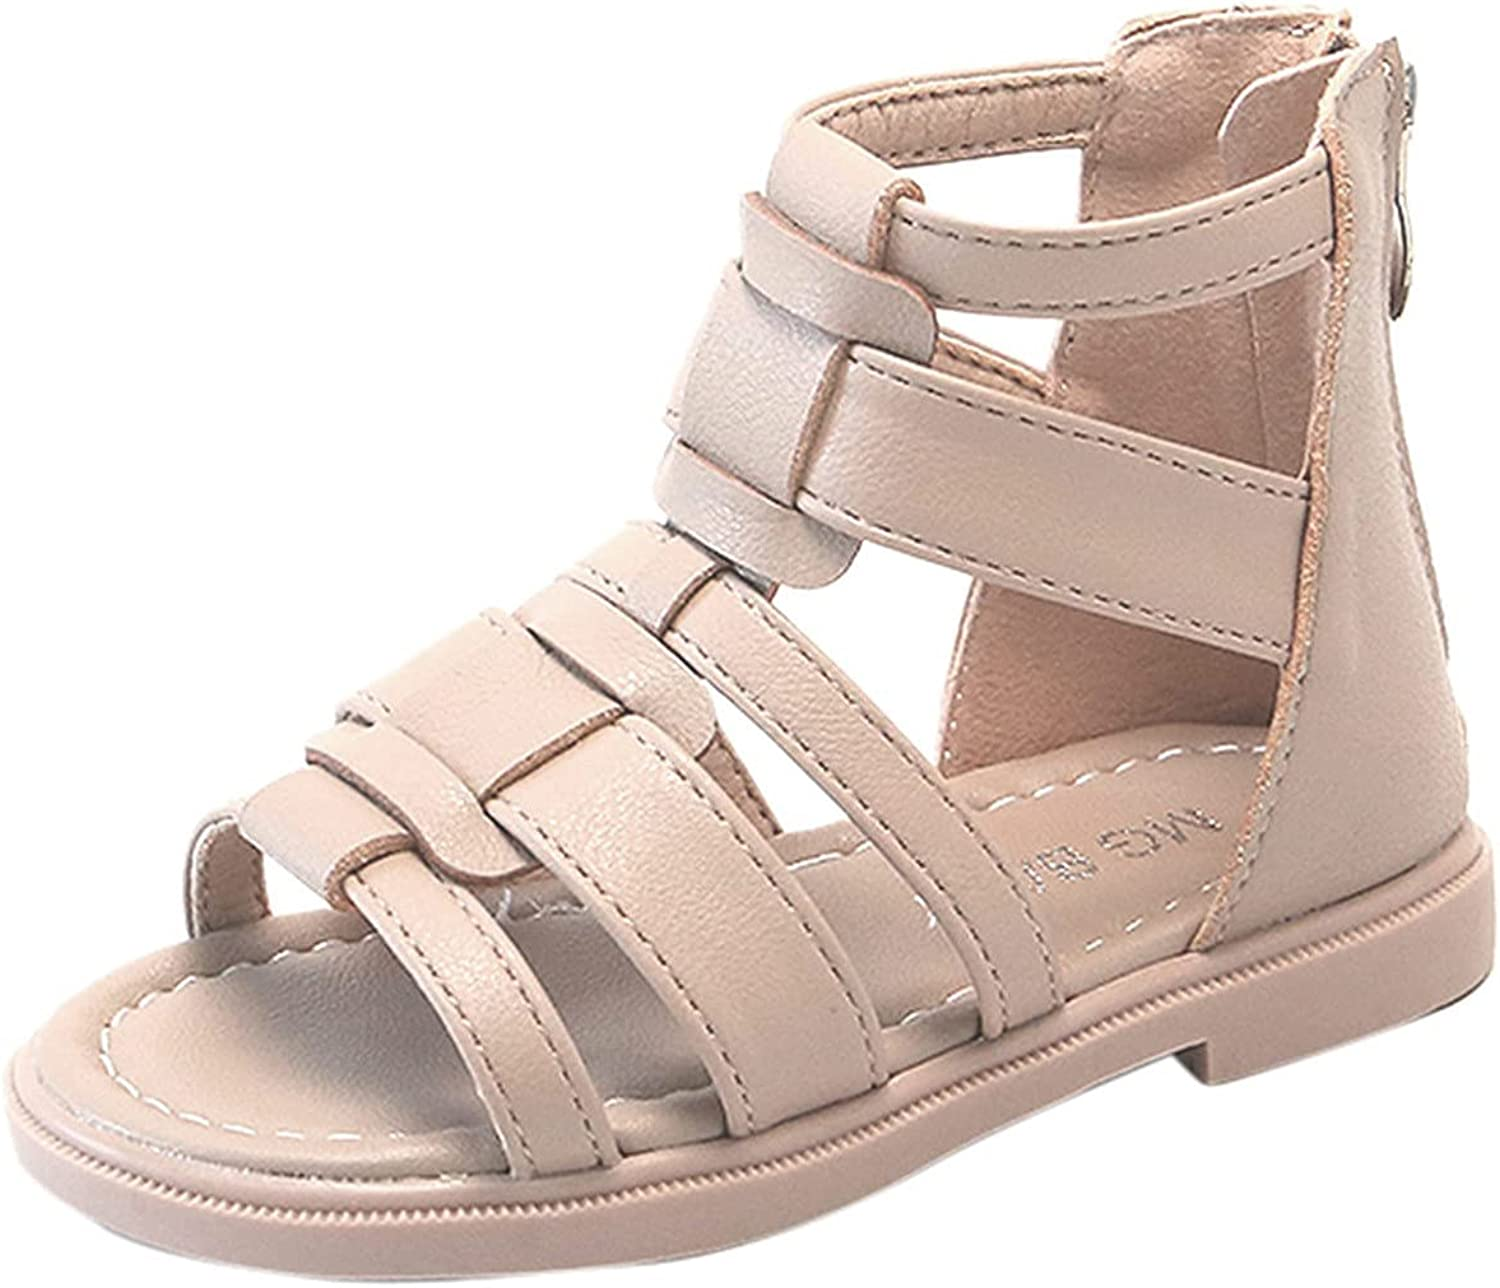 Toddler Girl Sandals for Summer Gladiator Cross-Tied Zipper Flat Sandals with Strappy Ankle Zipper Sandals for 1-9 Years